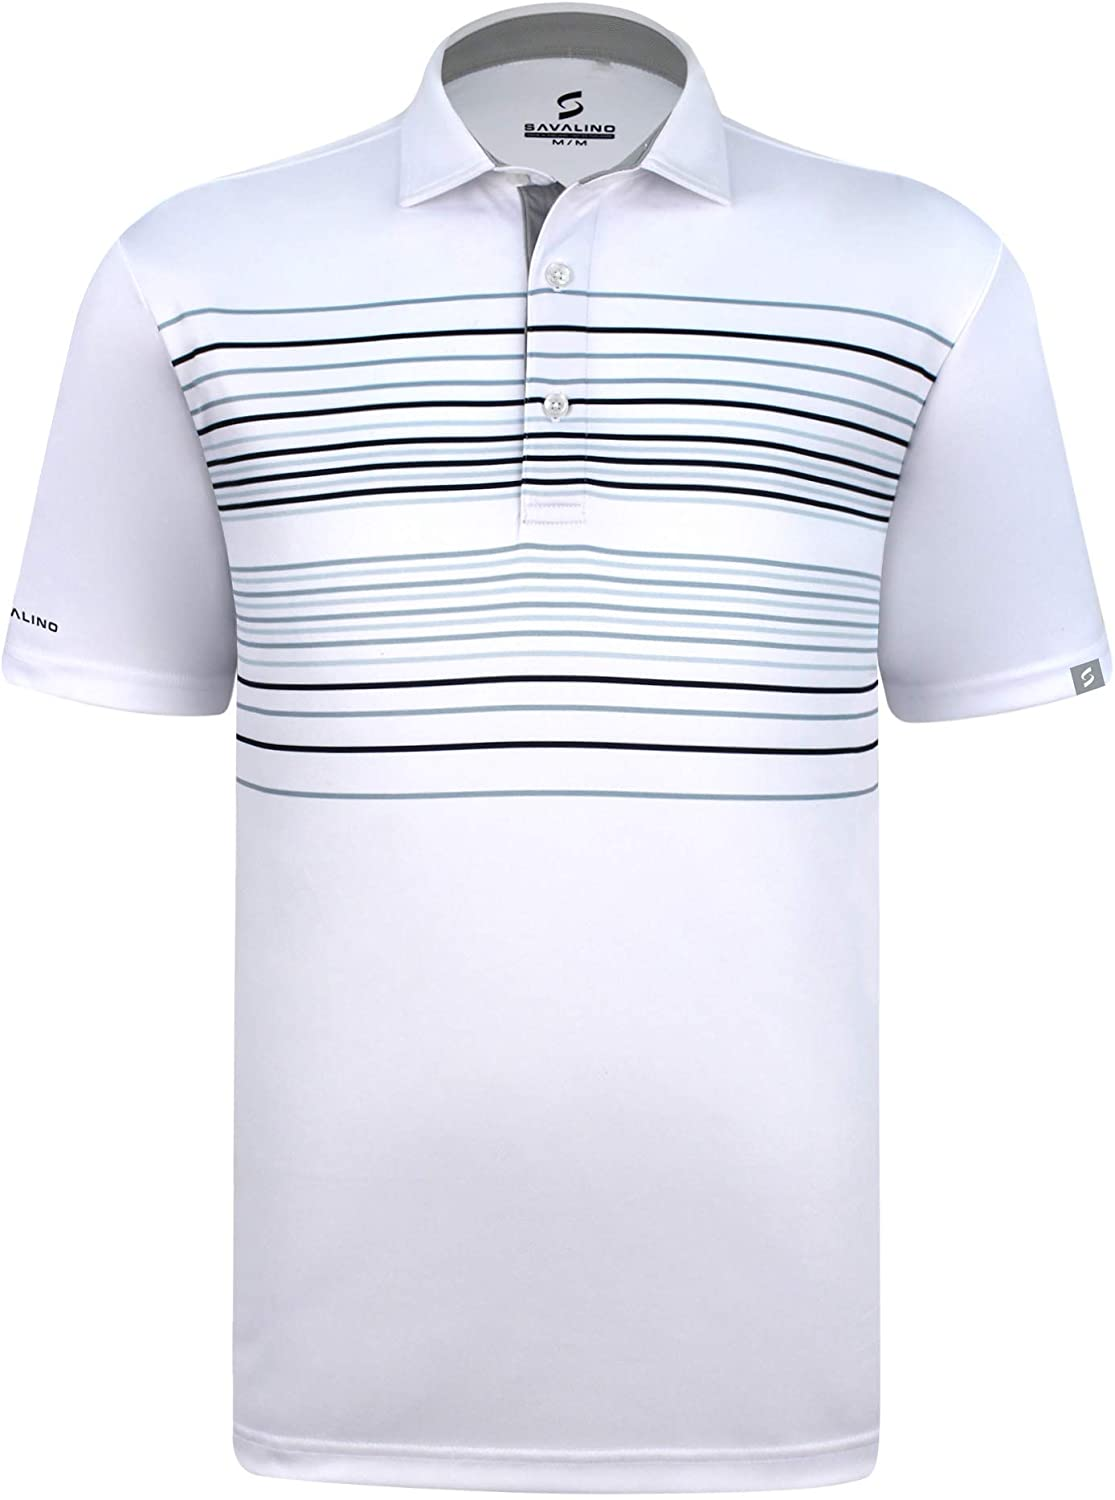 SAVALINO Men's Short Sleeved Polo Shirts Material Wicks Sweat & Dries Fast, Size S-5XL